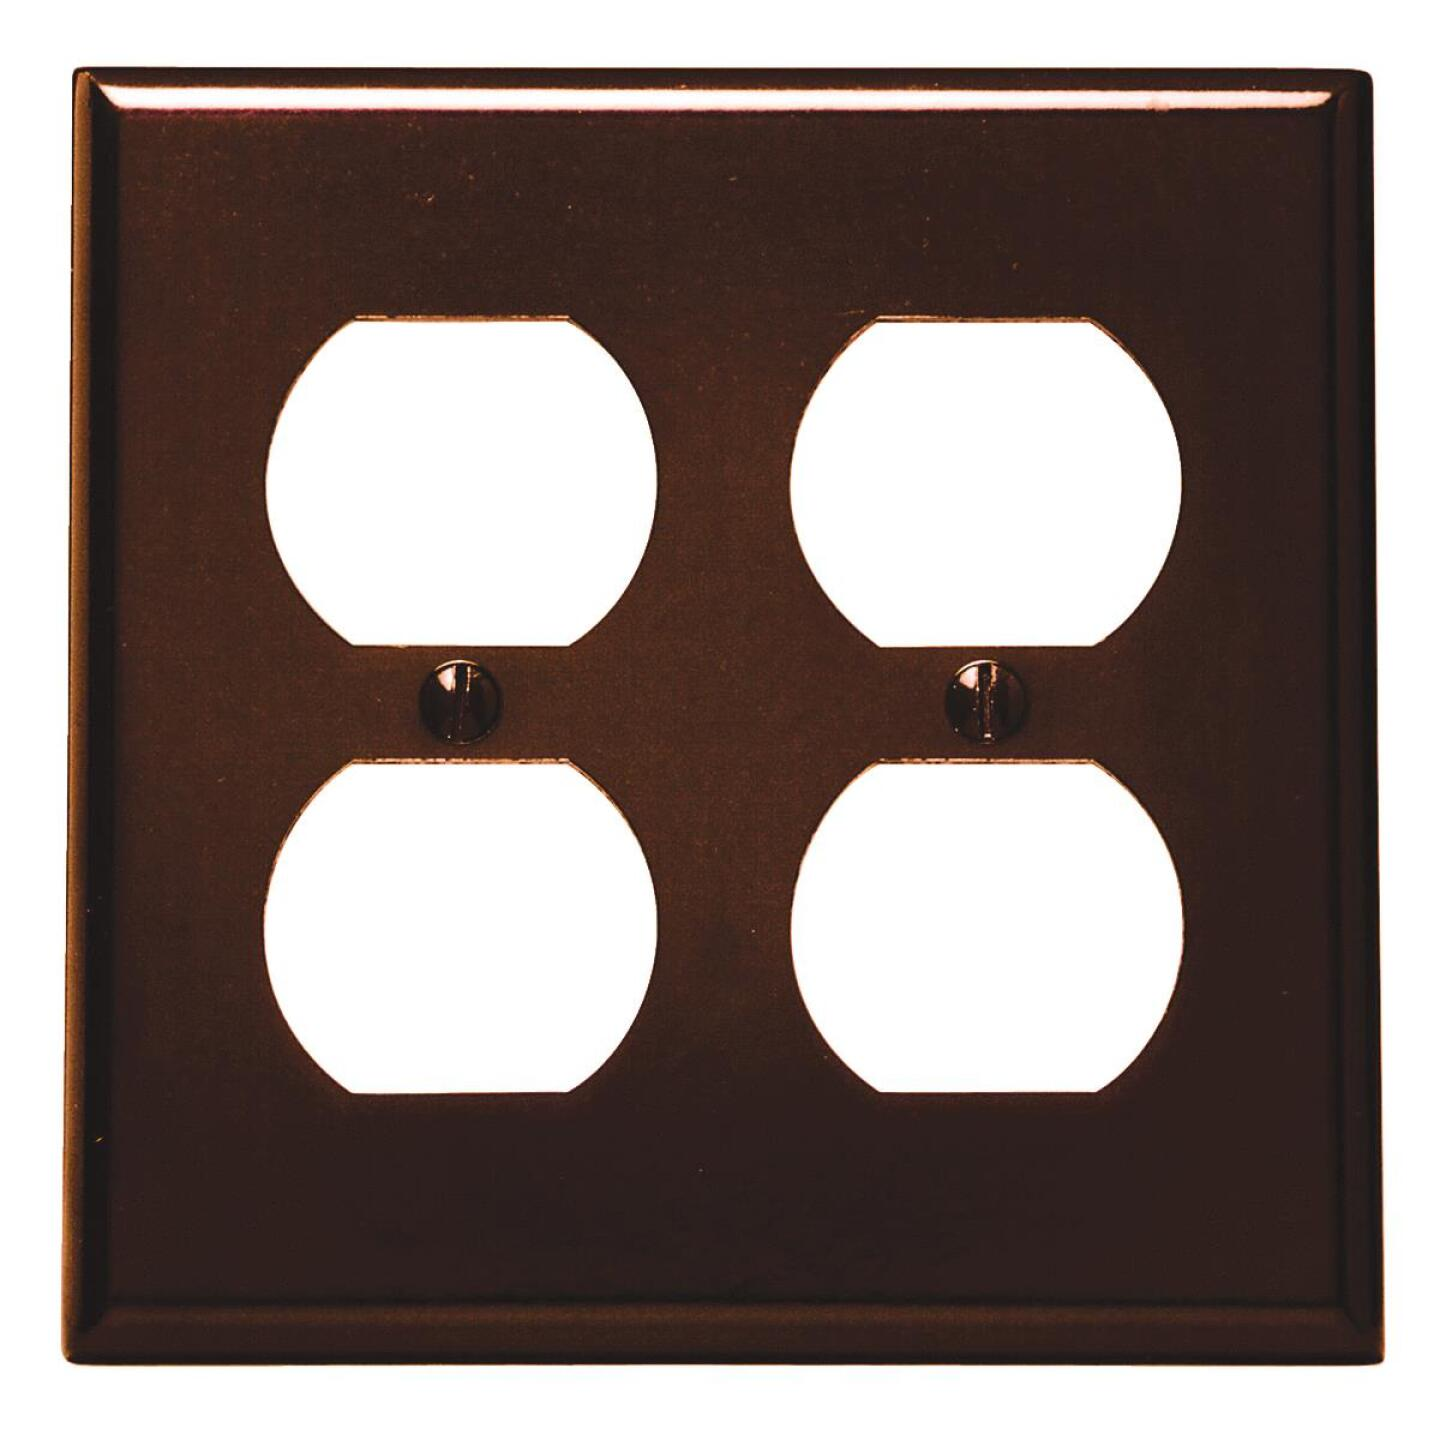 Leviton 2-Gang Smooth Plastic Outlet Wall Plate, Brown Image 1